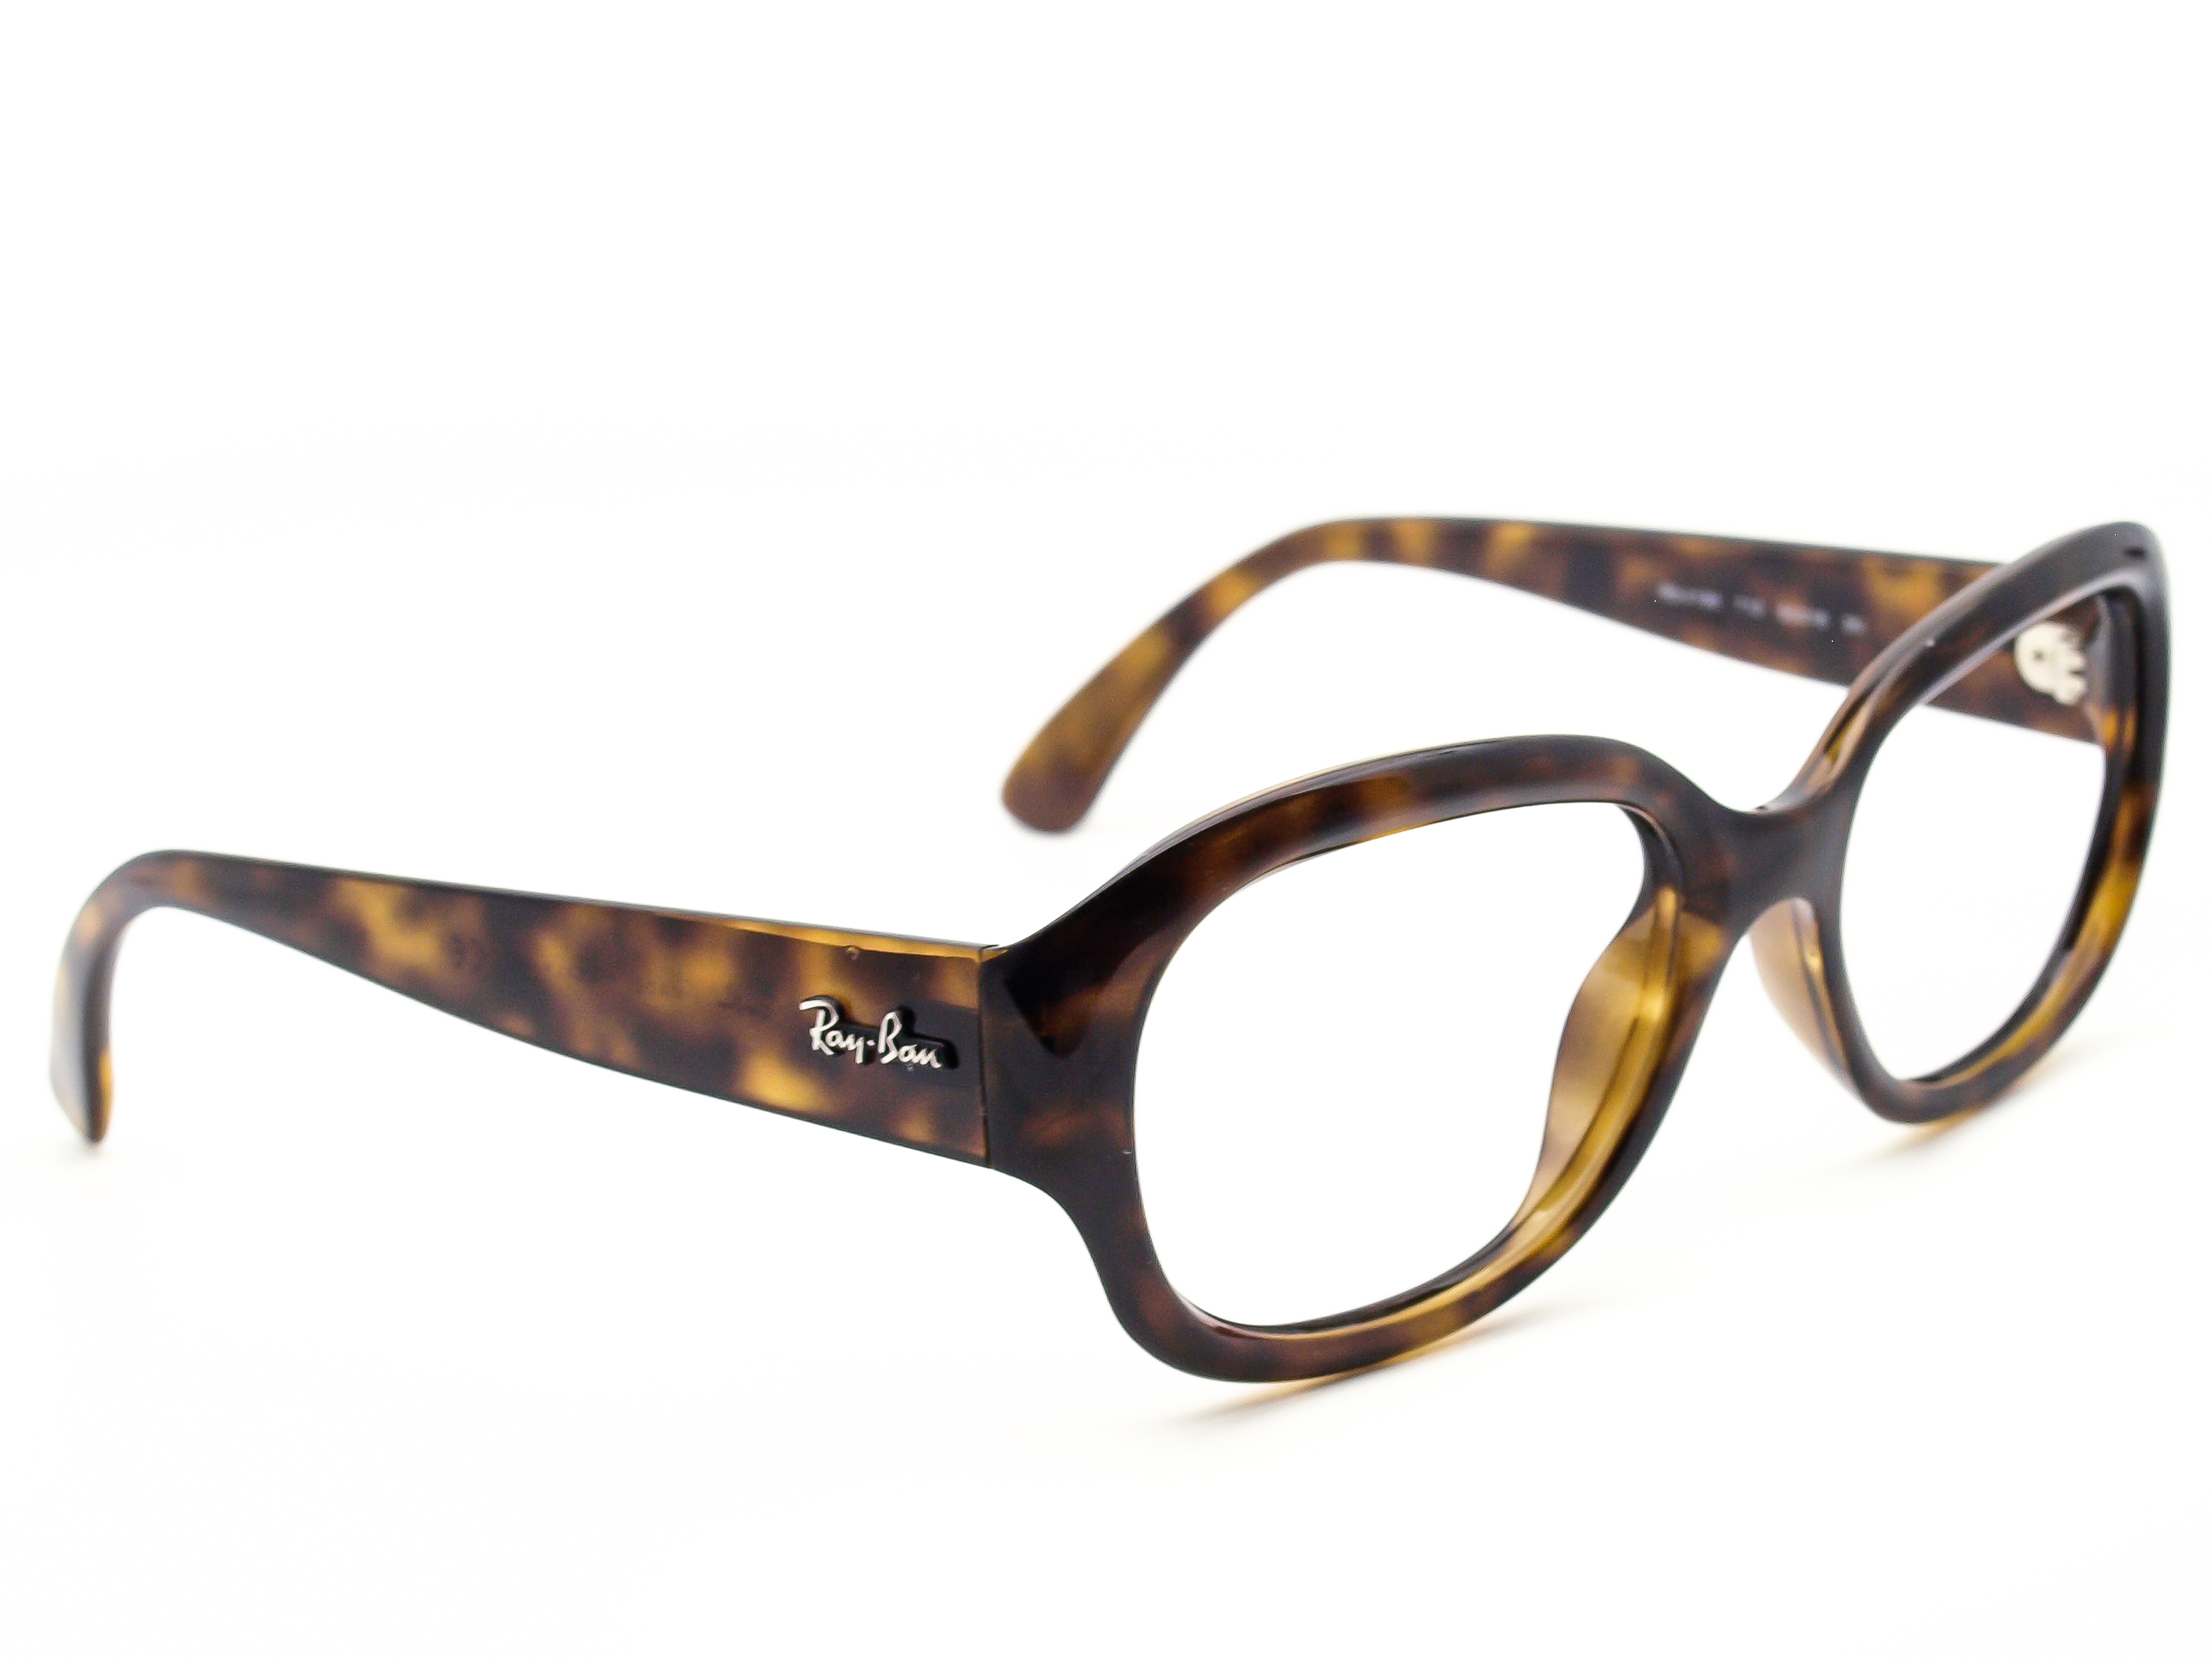 50c0889f236c Ray Ban RB 4198 710 Sunglasses Frame Only